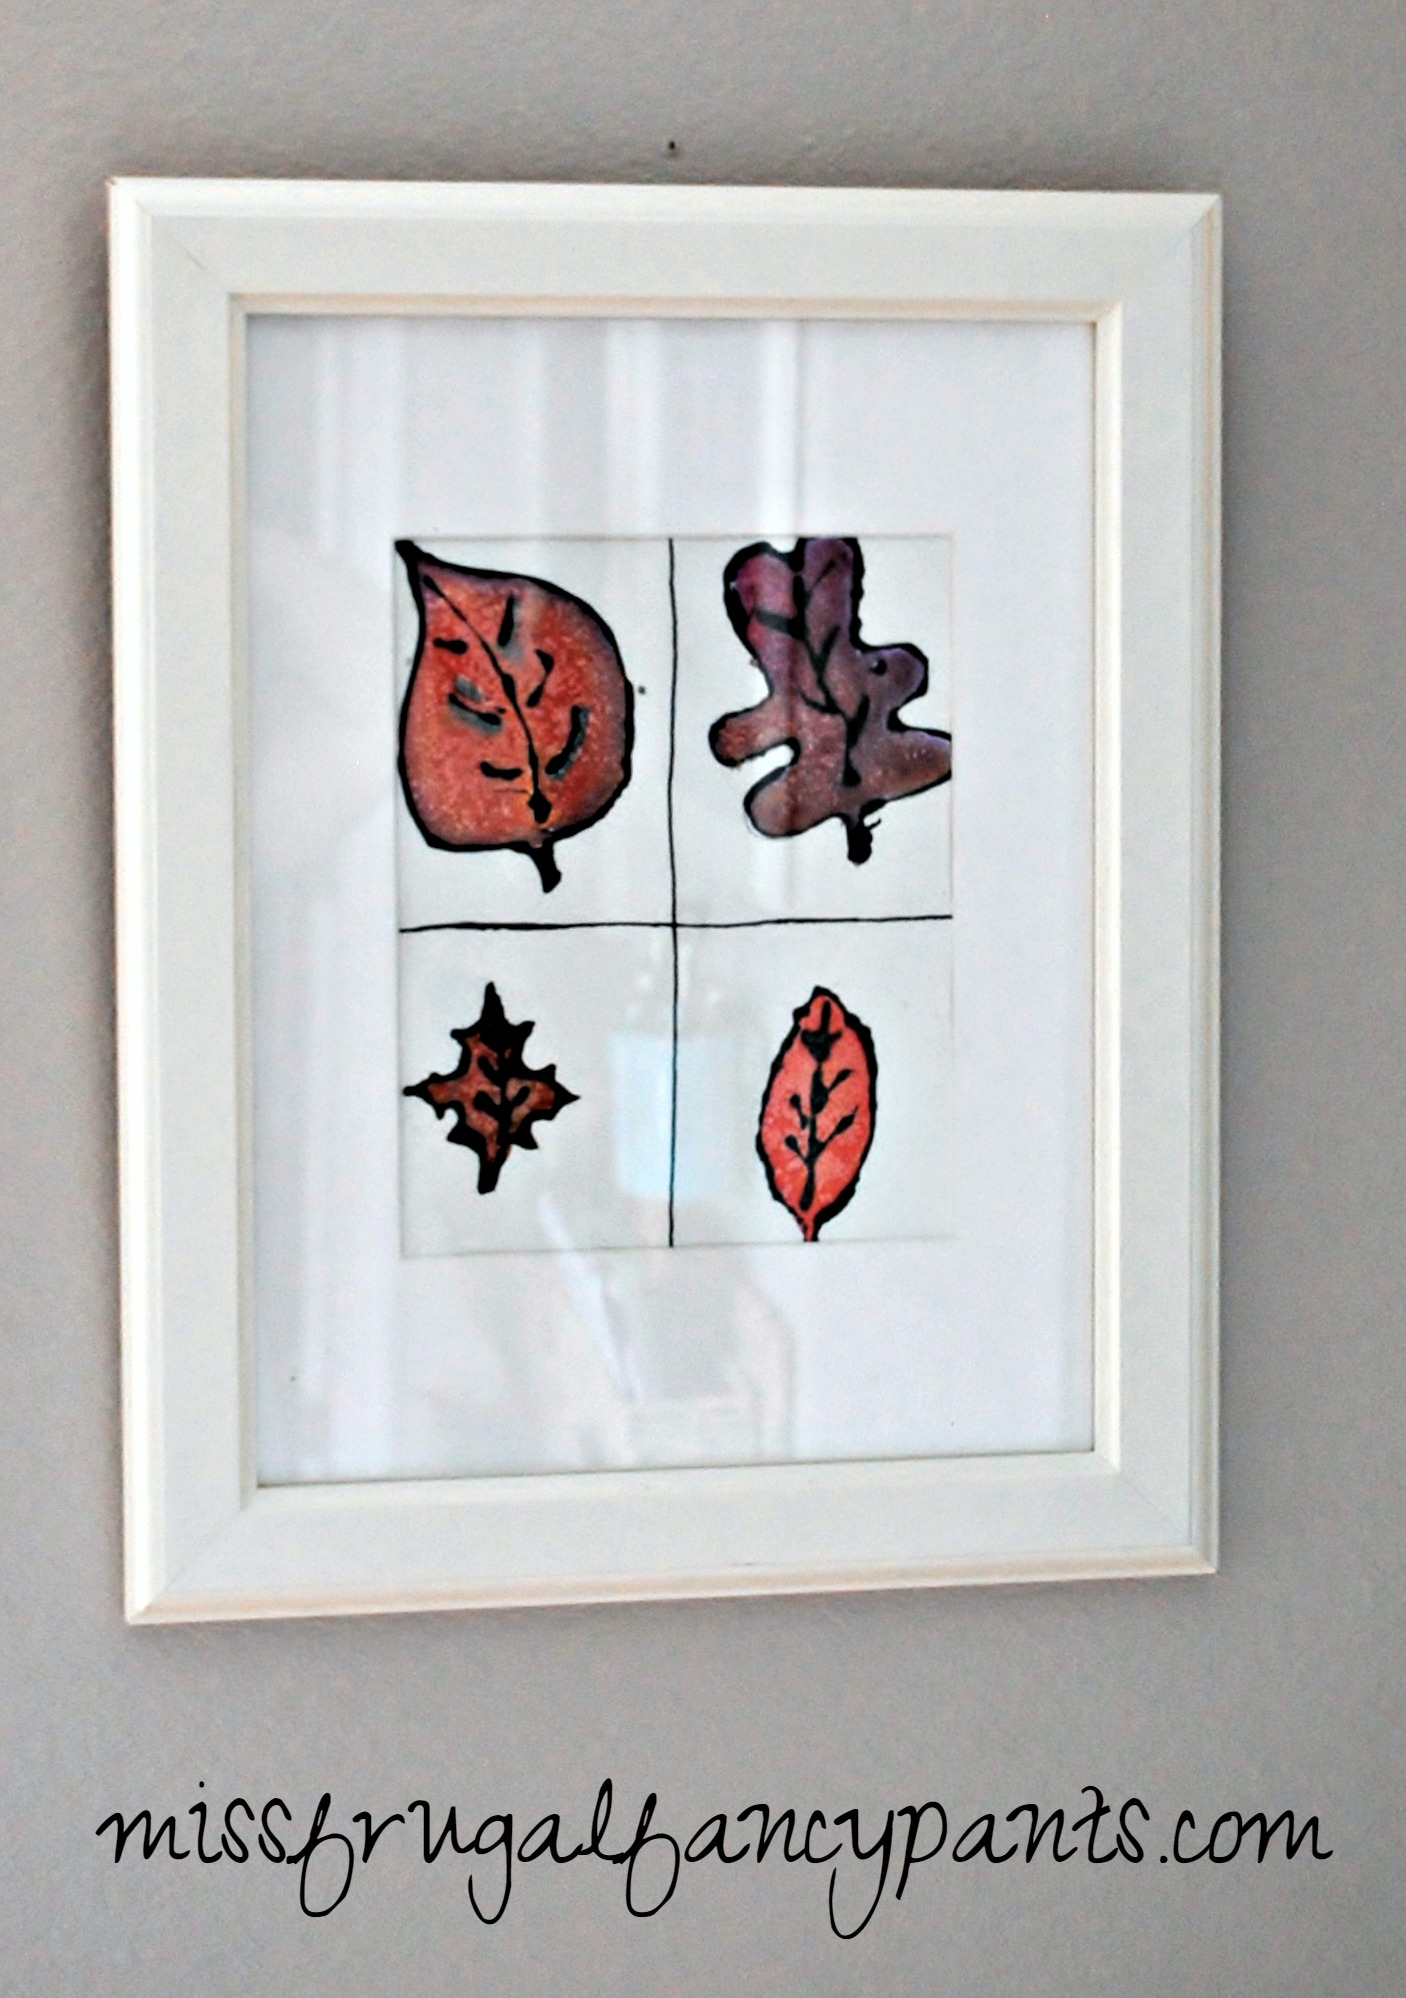 Frame Your Childs Artwork from School for Free Holiday Decor | missfrugalfancypants.com